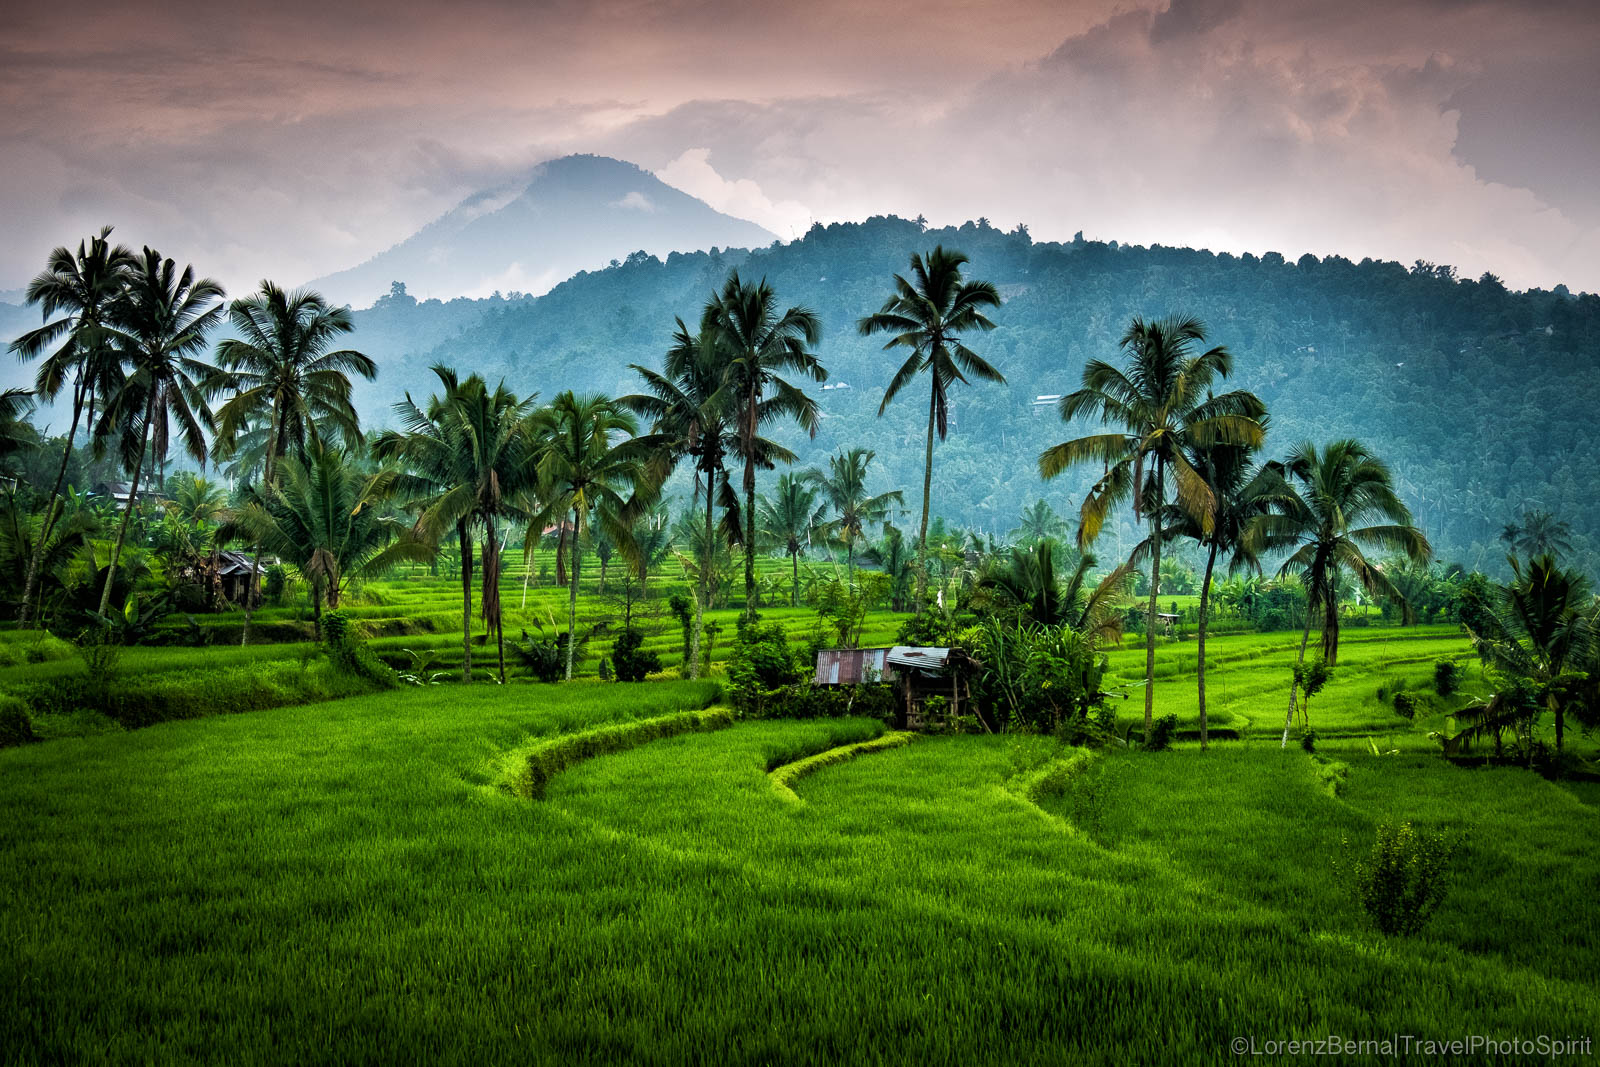 Gunung Agung volcano, from the rice terraces in Munduk - Indonesia Travel Photography by Lorenz Berna